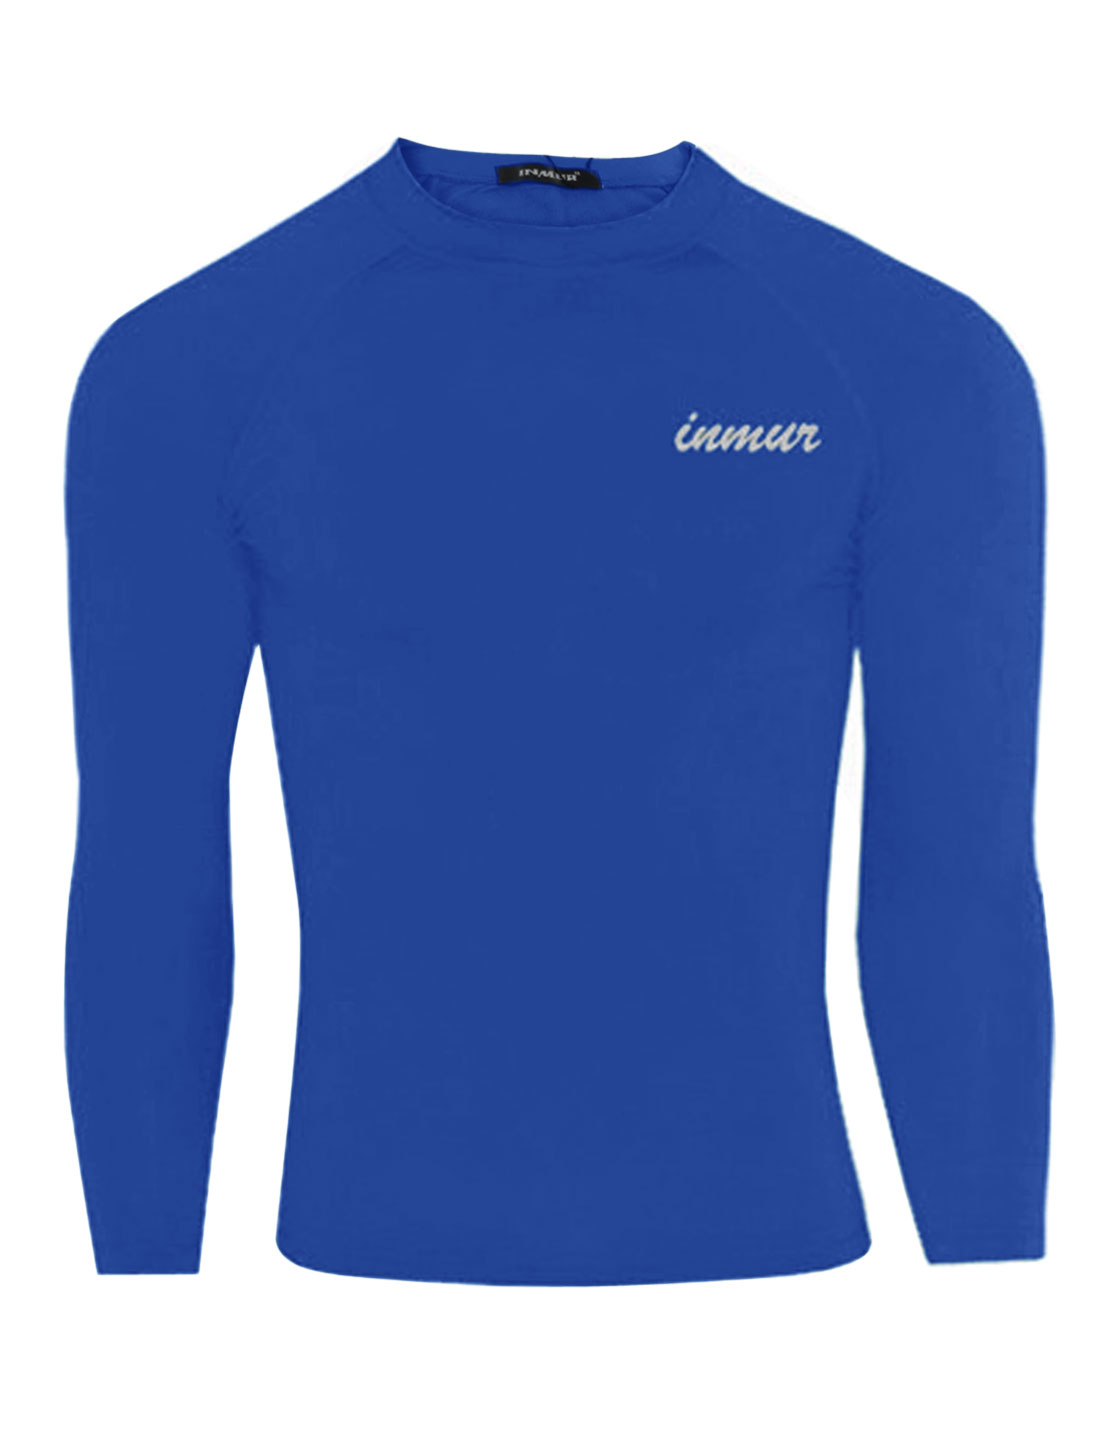 Men Round Neck Letters Detail Cozy Fit Sport Shirt Royal Blue M